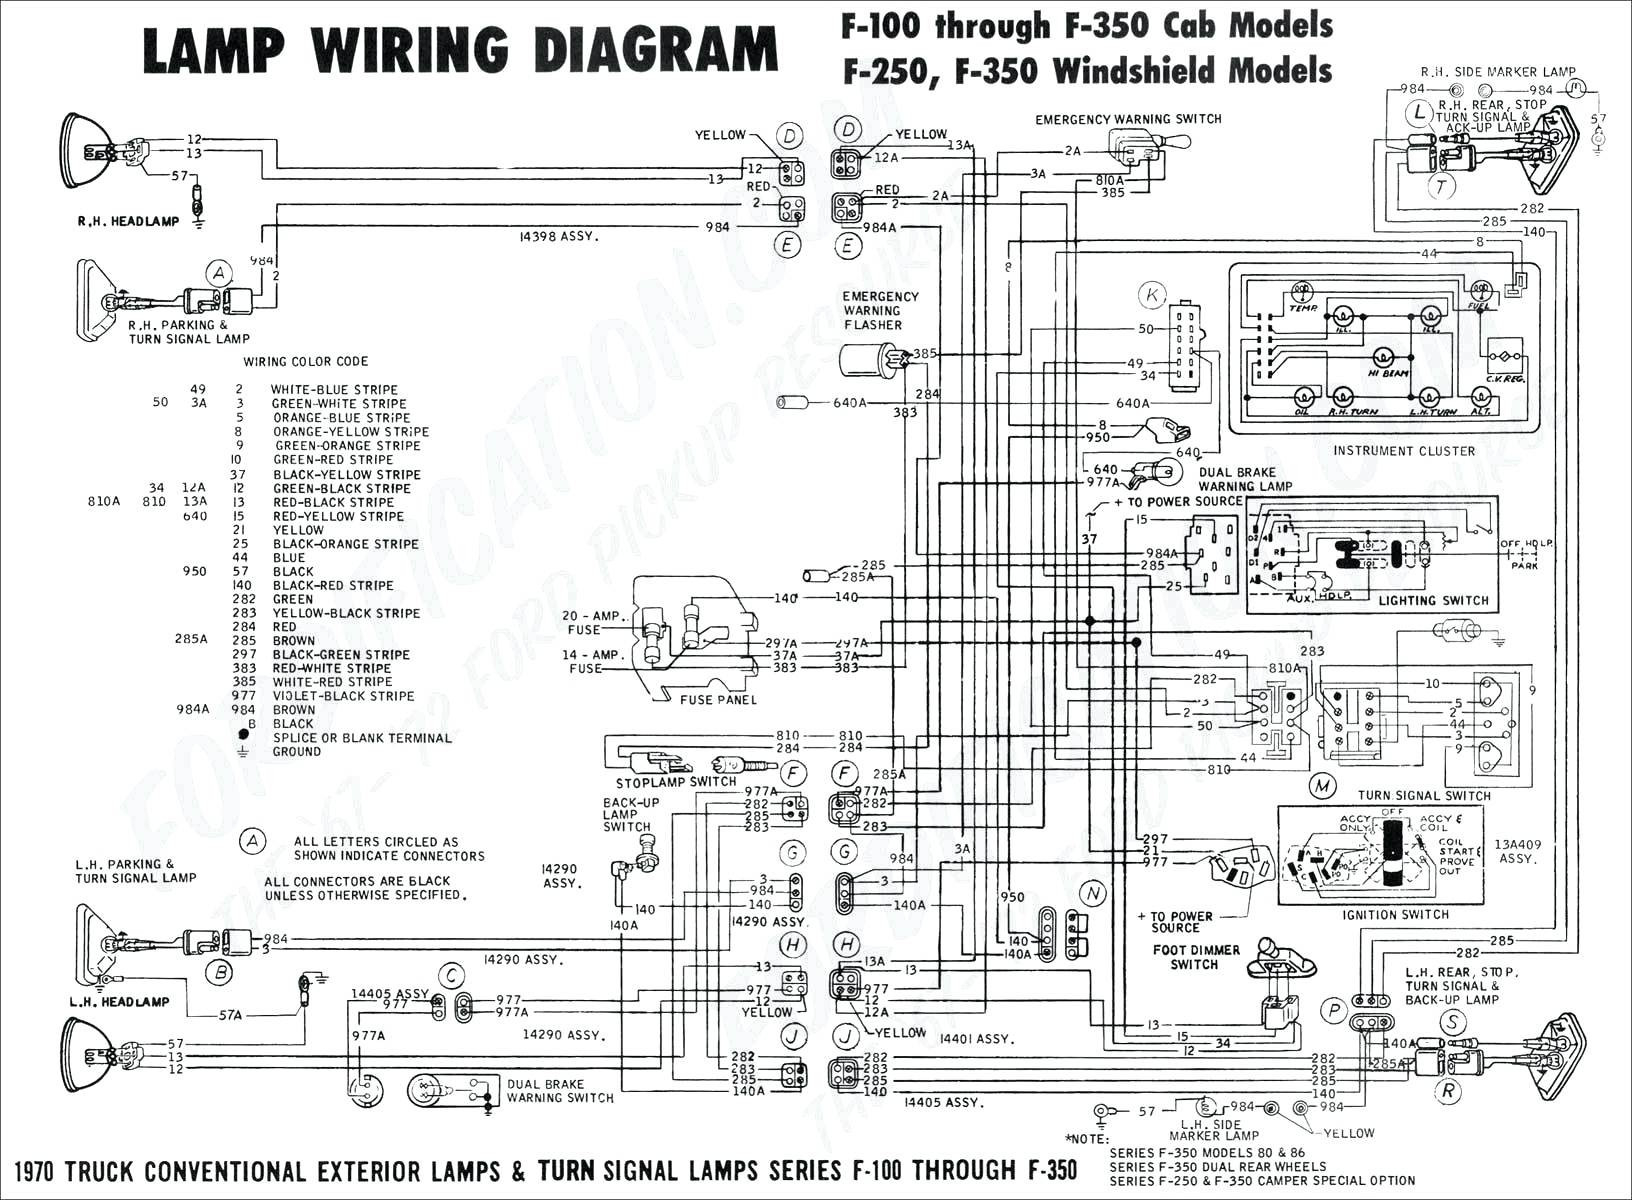 2005 chevy silverado 2500hd trailer wiring diagram fb 5635  wire o2 sensor wiring diagram on chevrolet silverado o2  fb 5635  wire o2 sensor wiring diagram